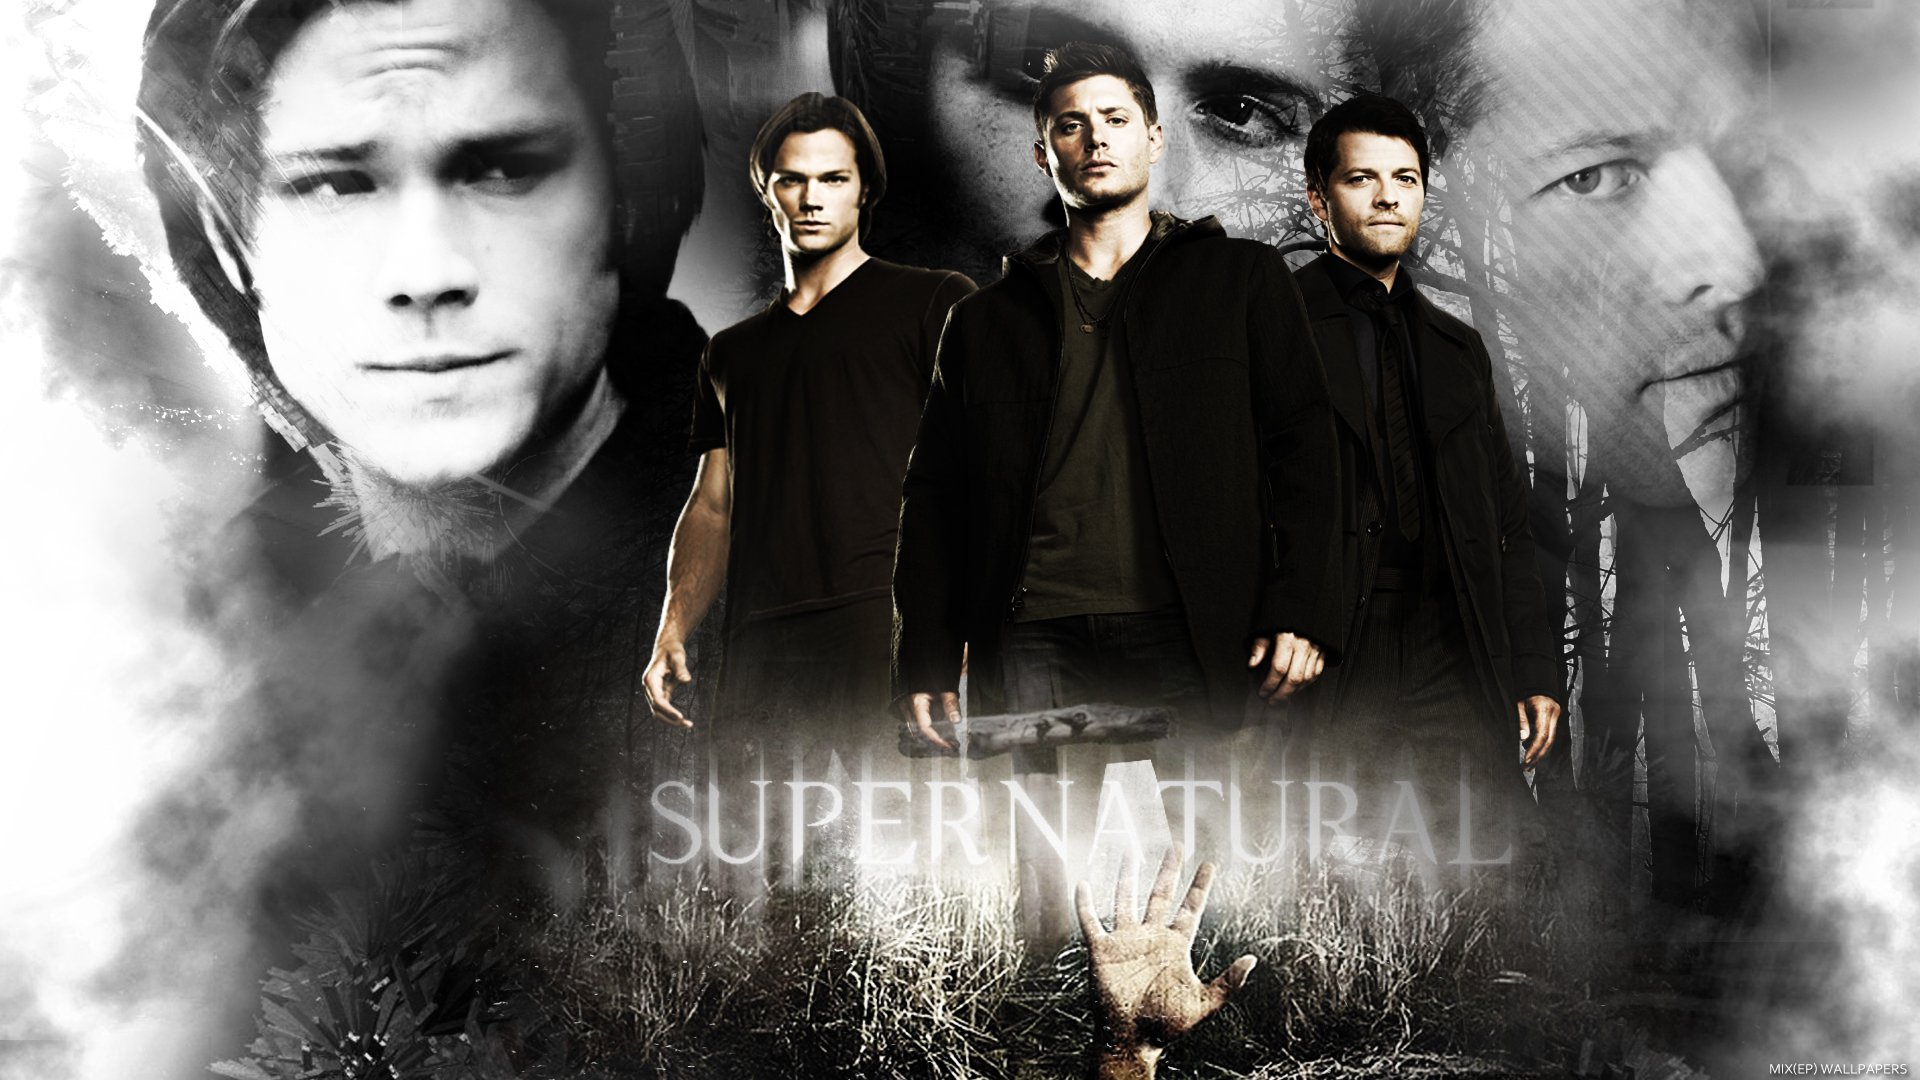 Supernatural Logo Wallpaper 1920x1080